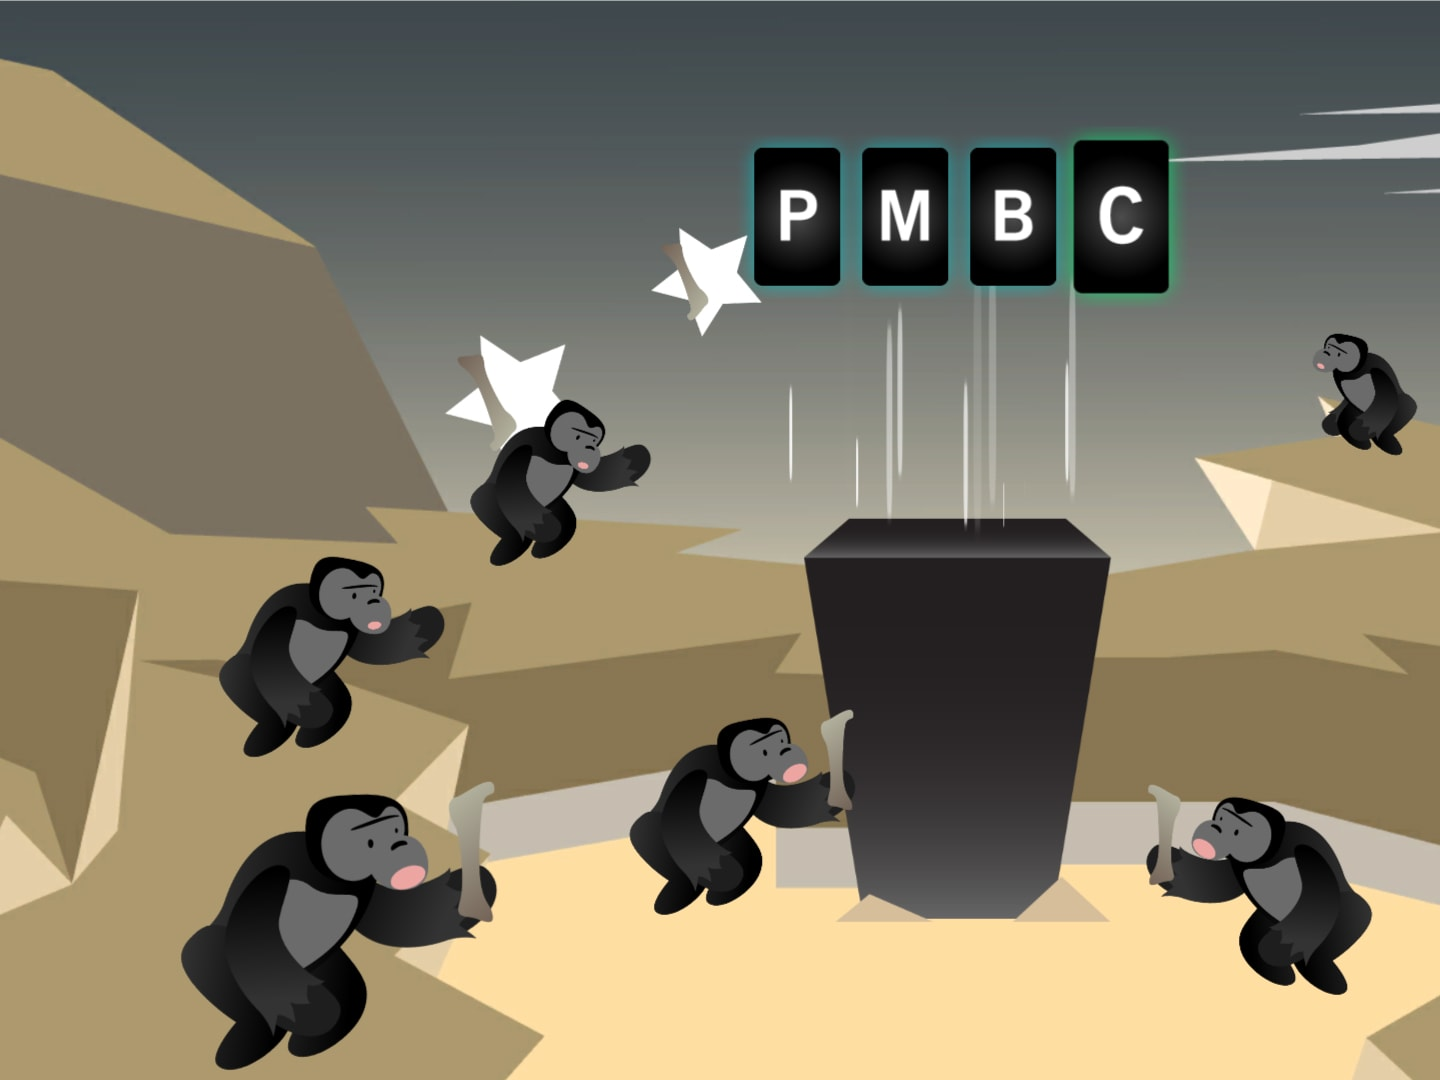 screenshot of game displaying apes surrounding a monolith with the letters PMBC above